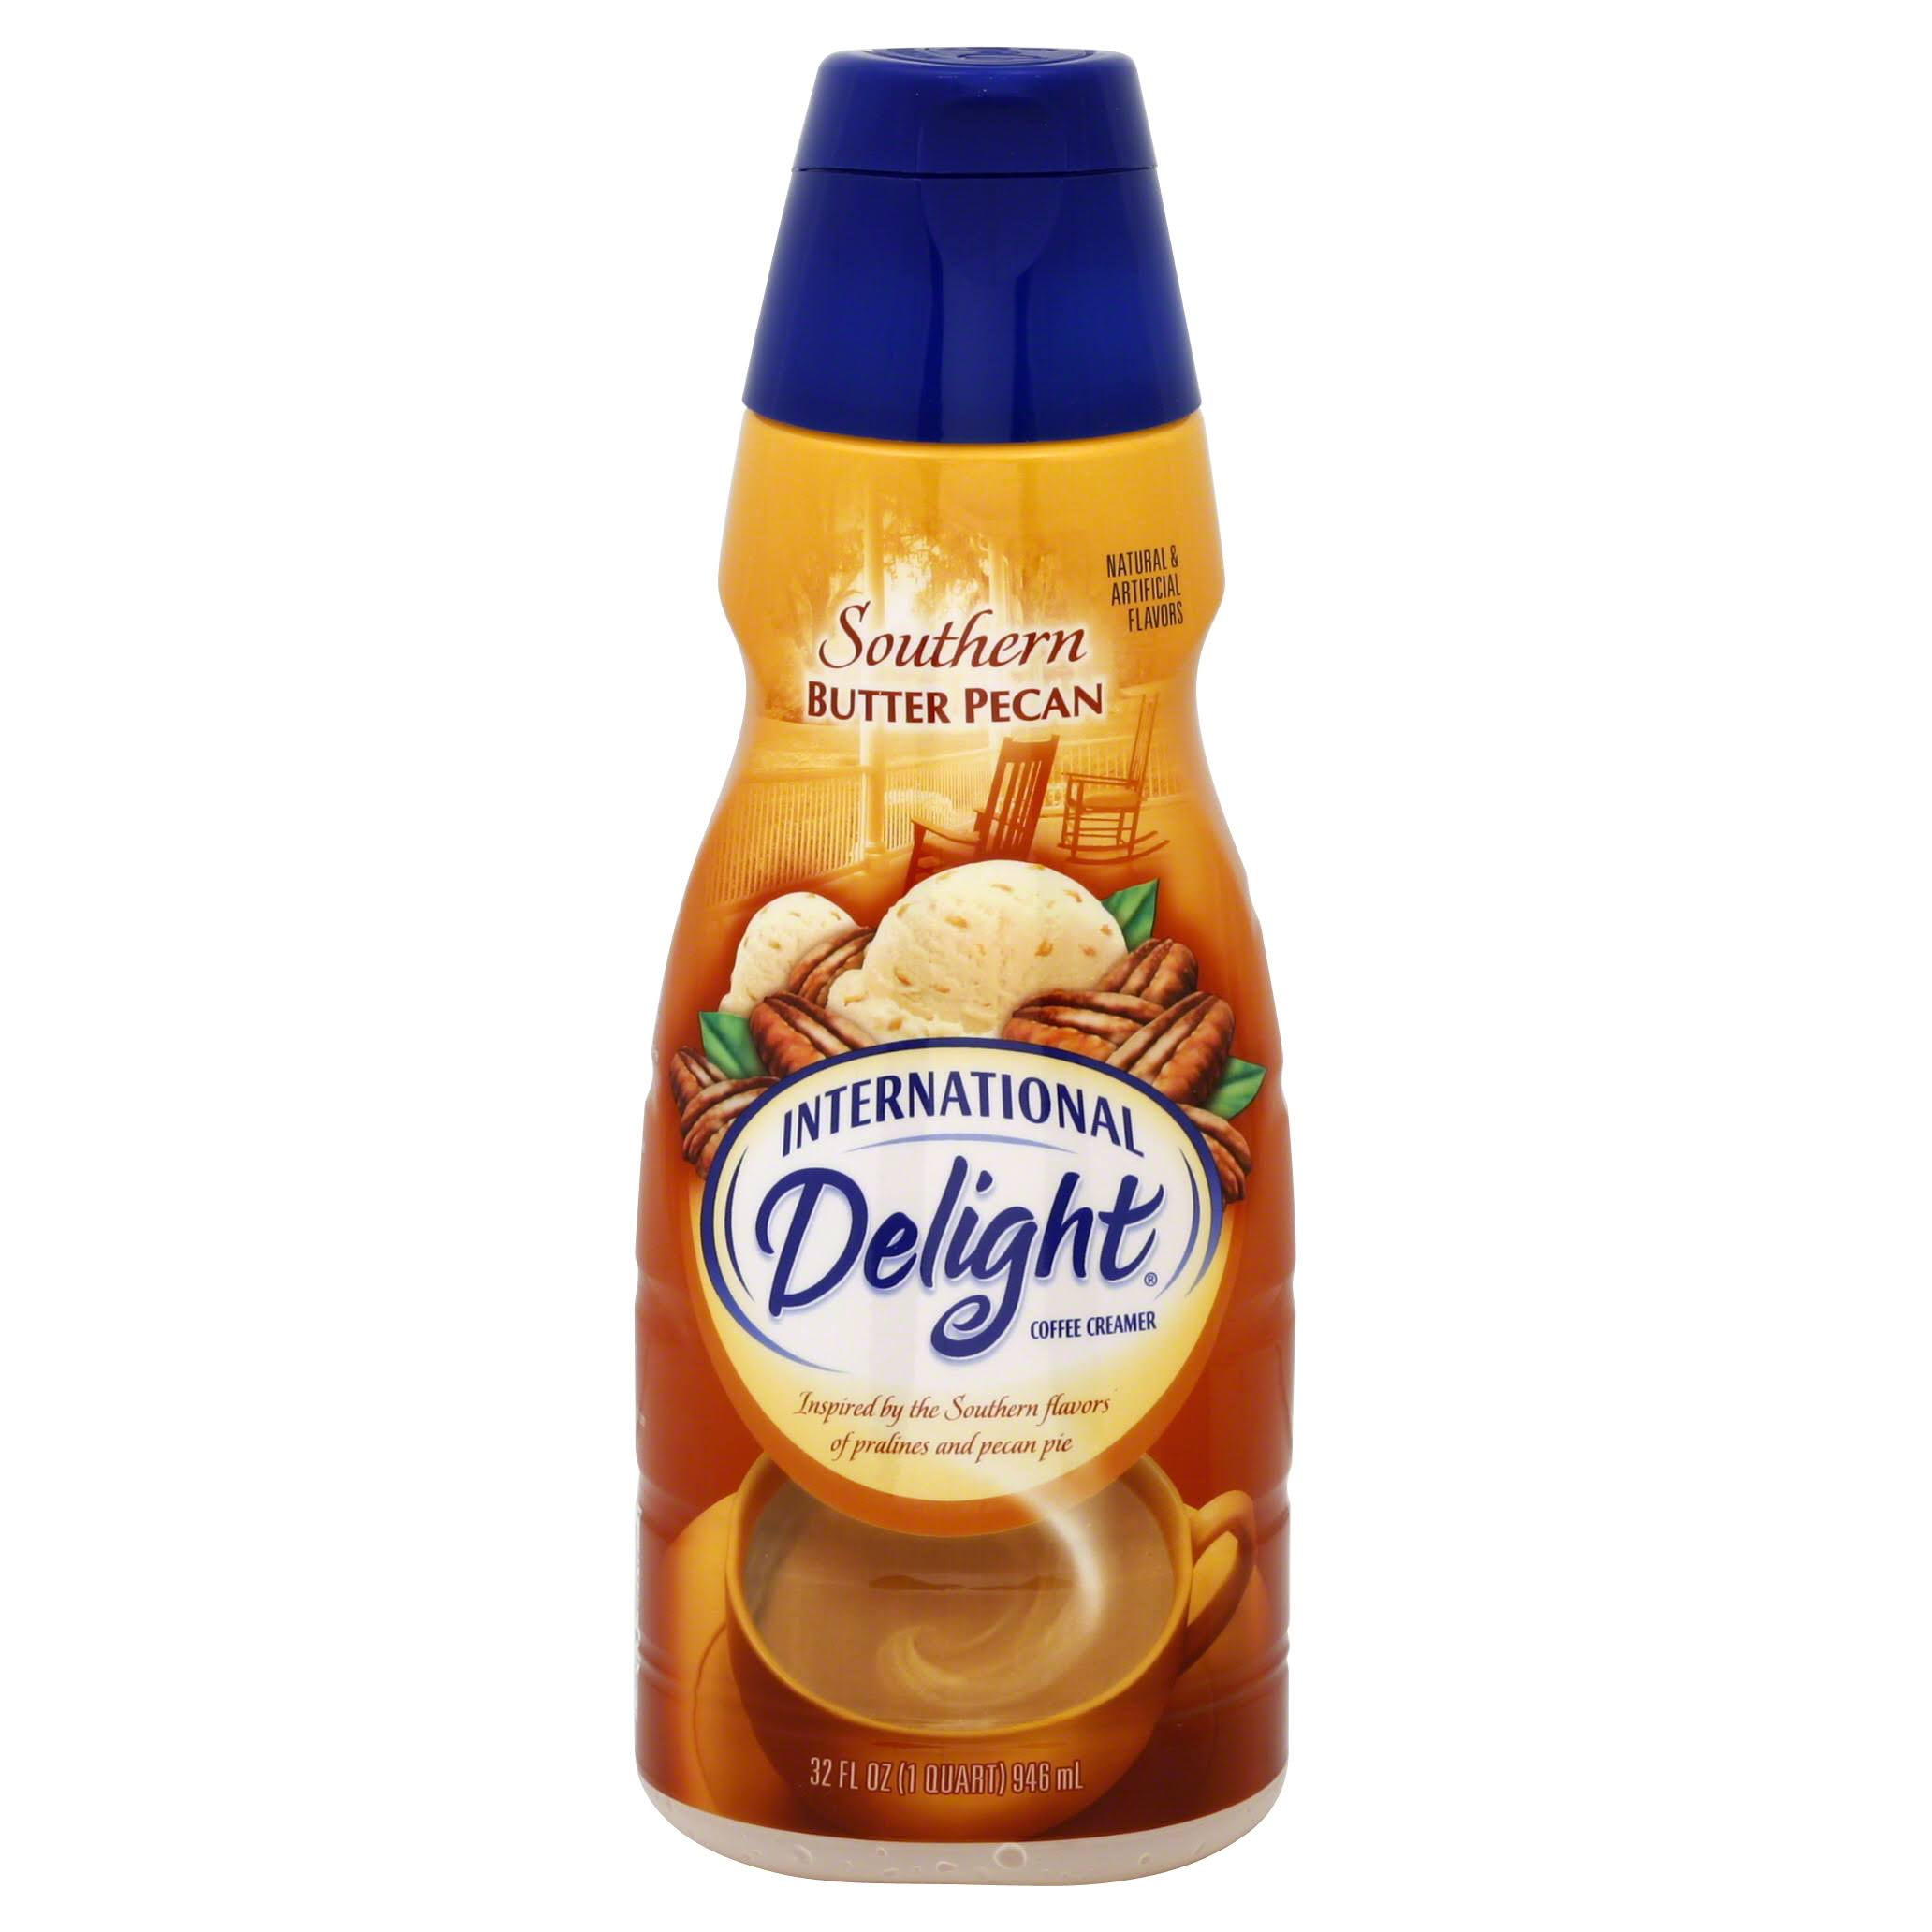 International Delight Southern Butter Pecan Coffee Creamer - 32oz